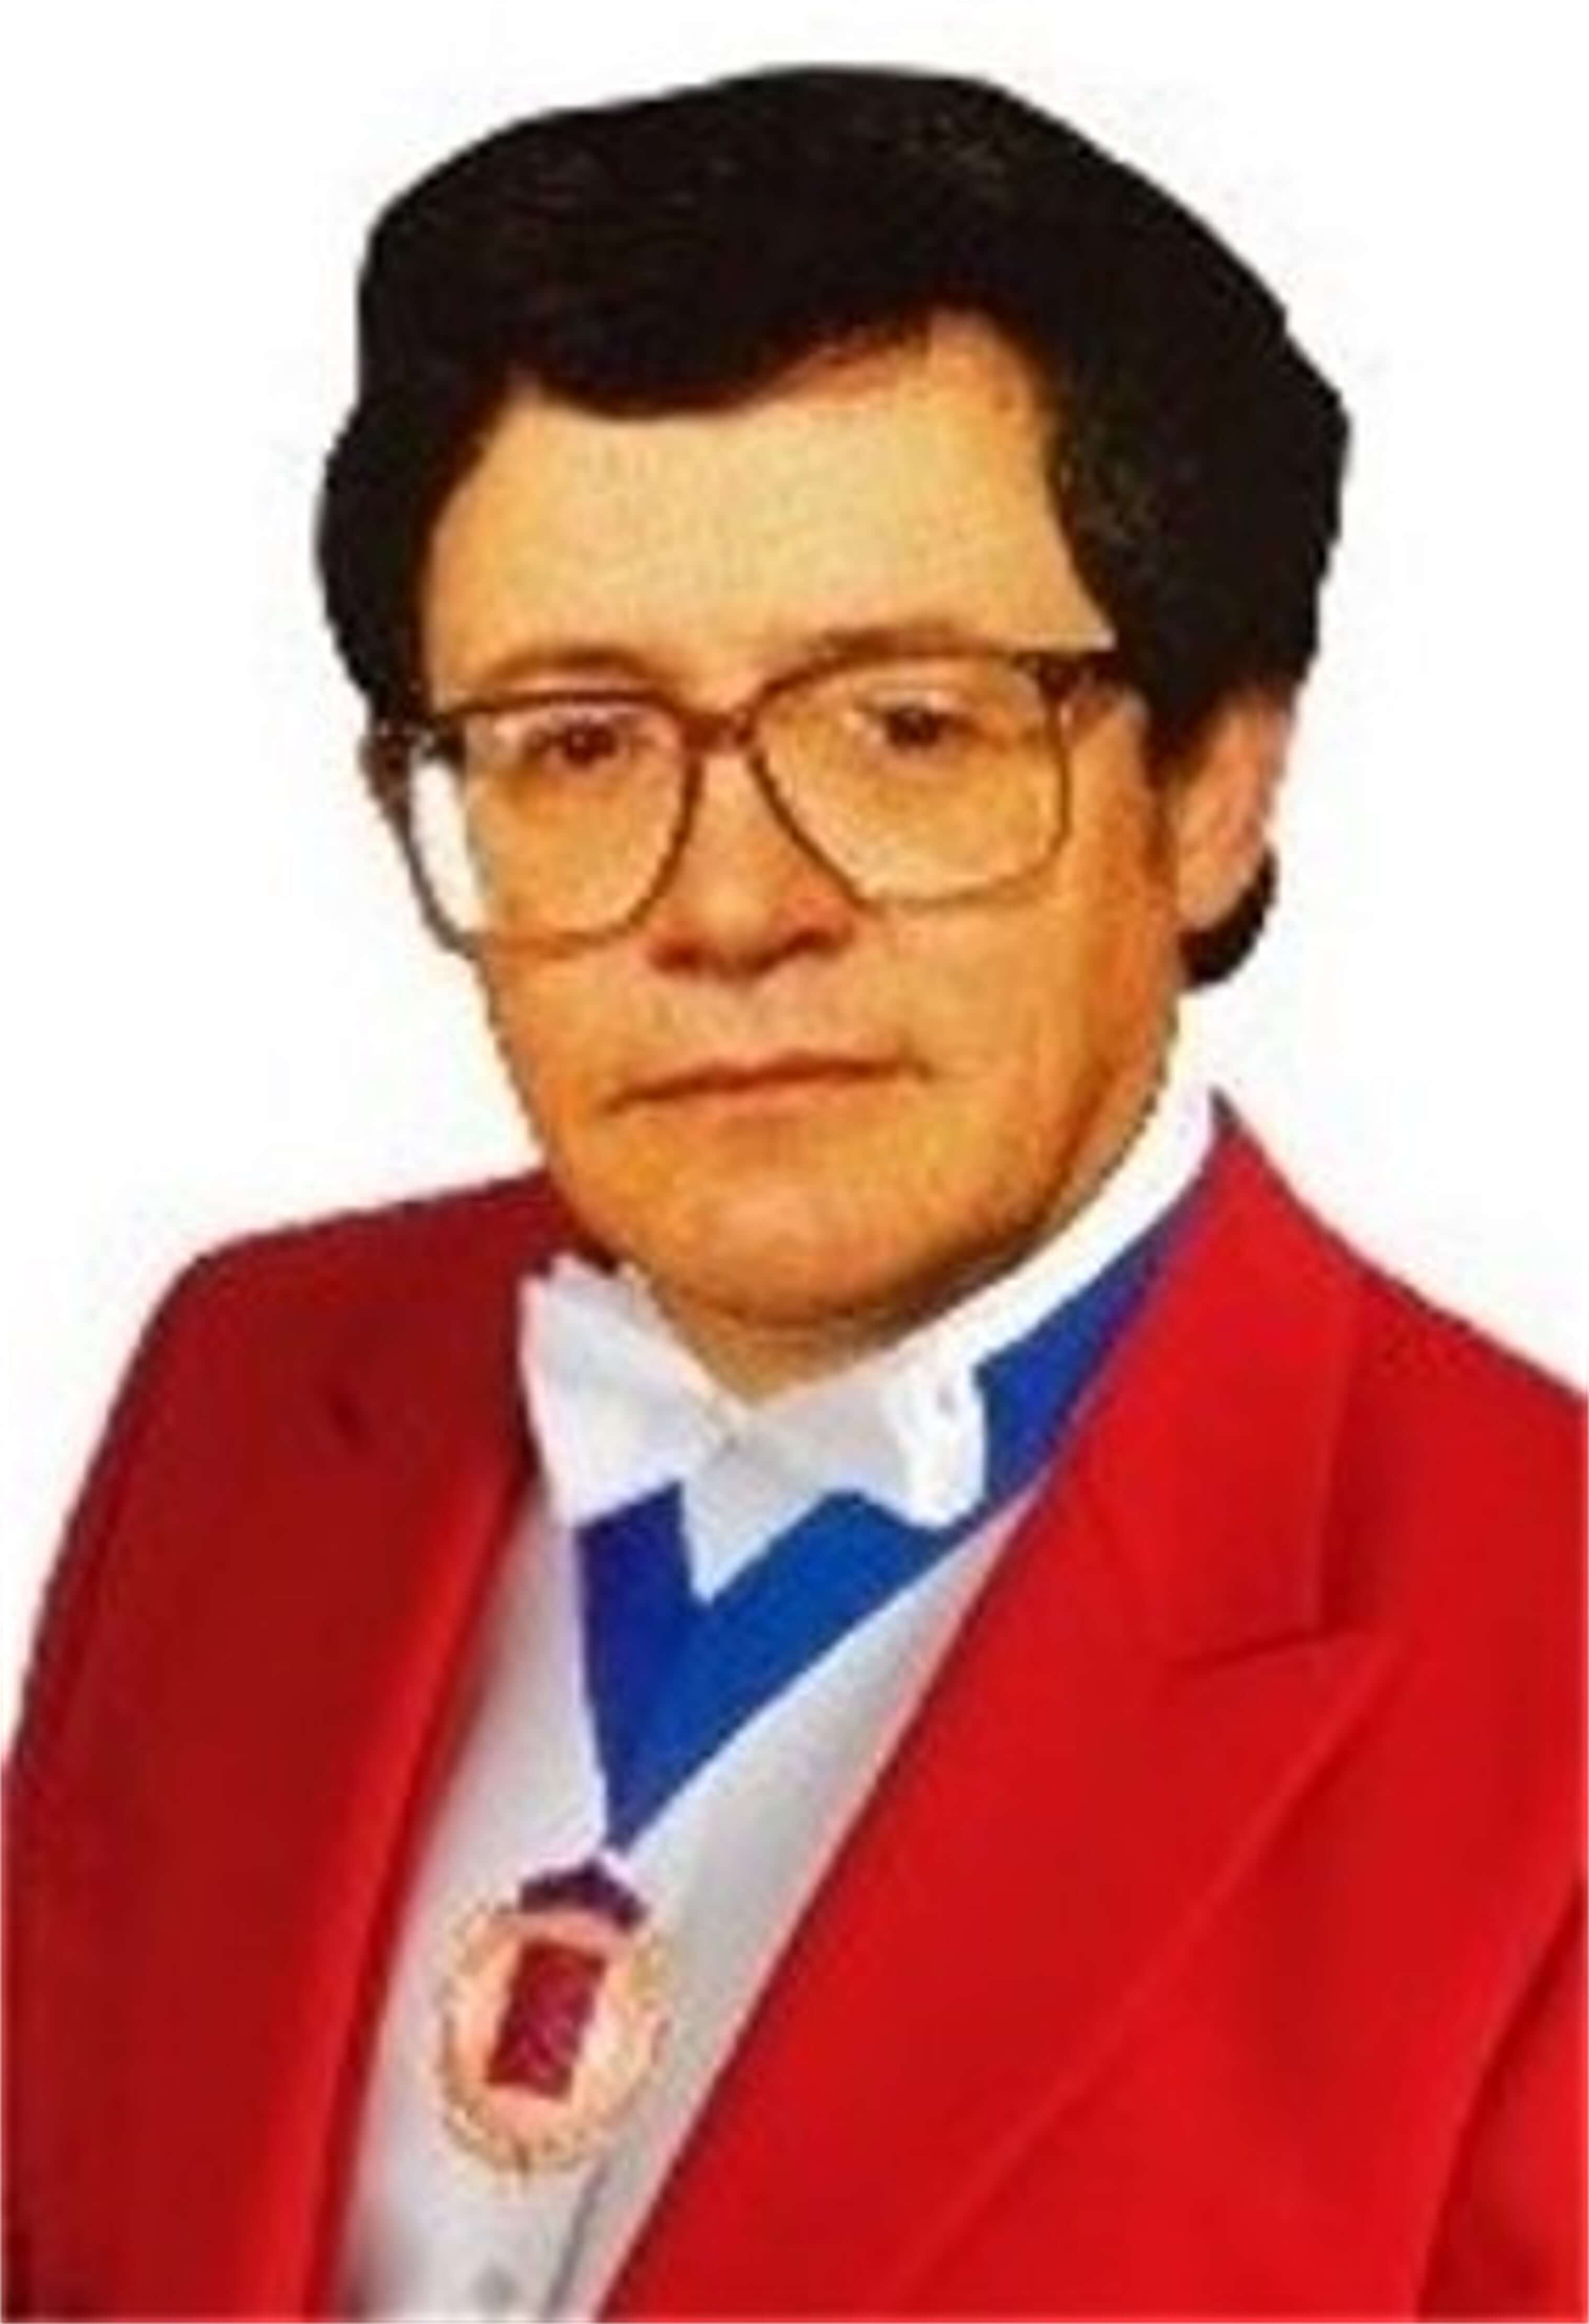 Professional Toastmaster and Master of Ceremonies North Yorkshire - Bernard Thain